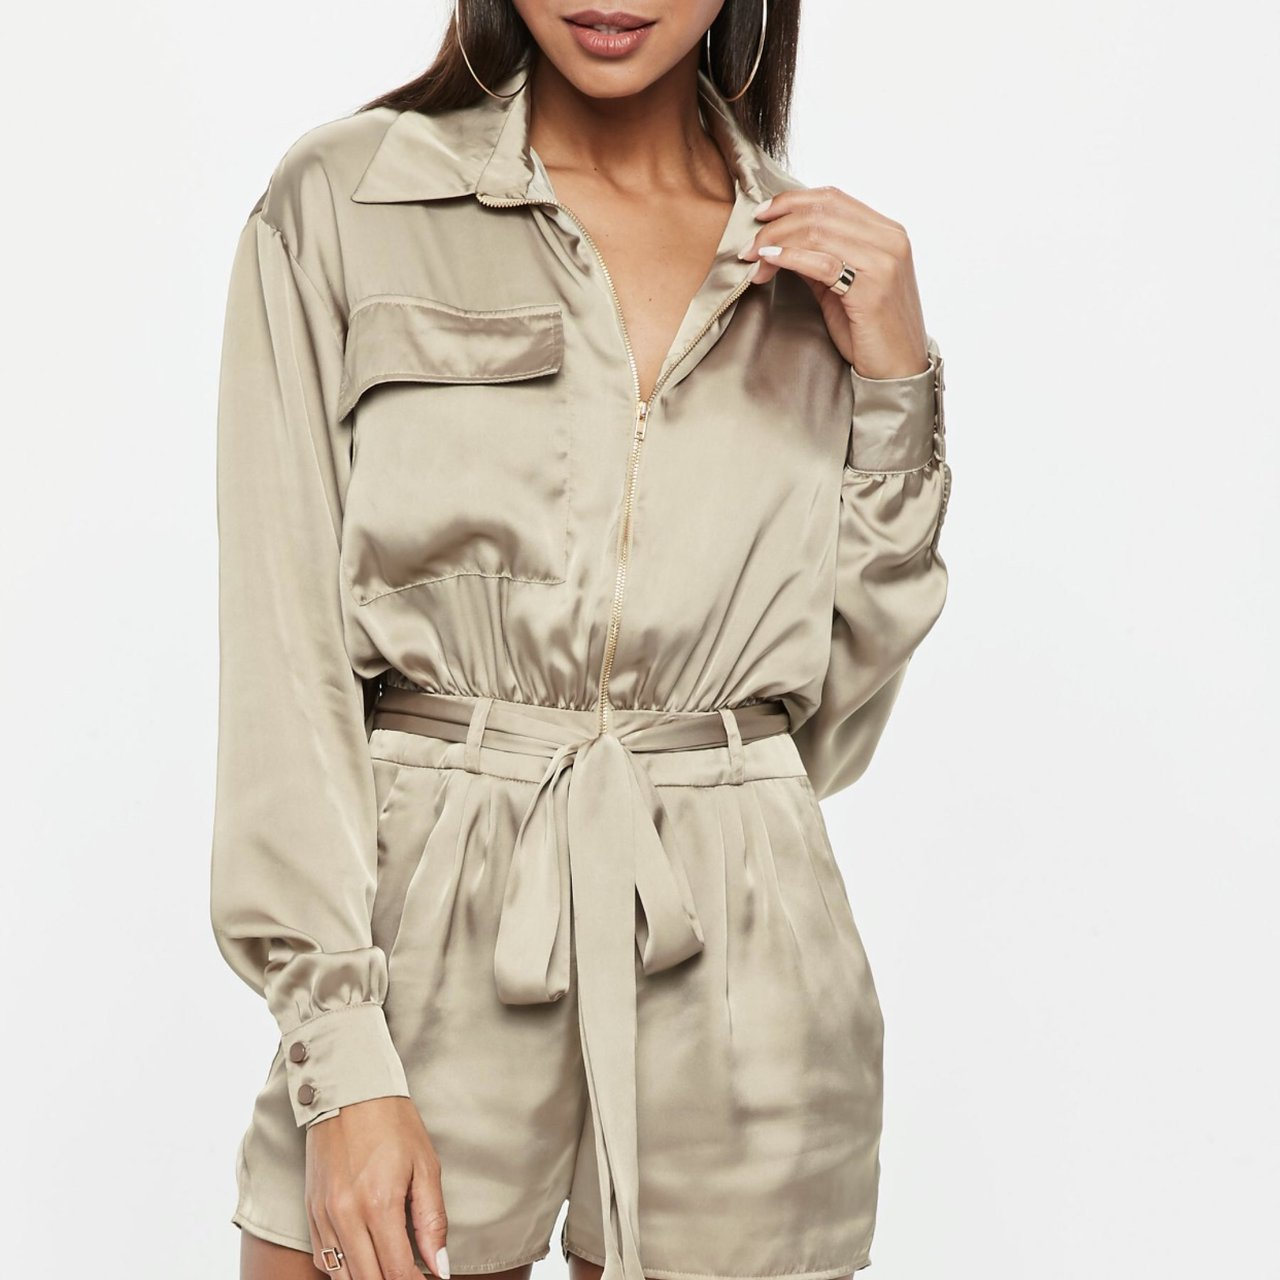 1e0aba7b0da SATIN MISSGUIDED PLAYSUIT SIZE 12 ONLY